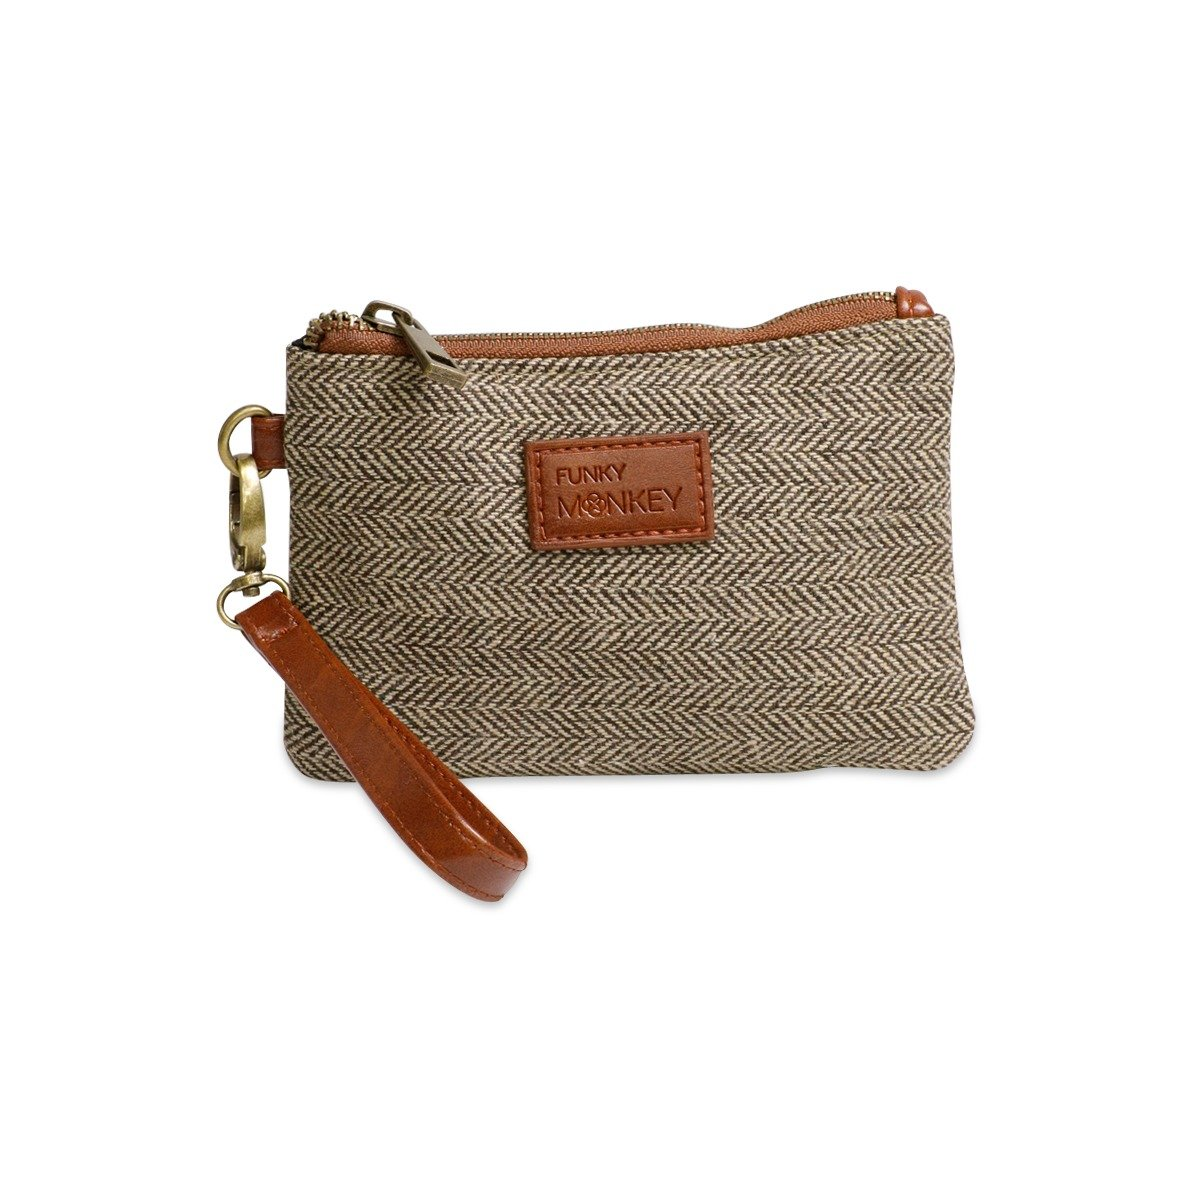 {Sophie Collection} Wristlet Wallet Clutch Bag - Phone Purse Handbag - Small, Medium, Large Size - Brown & Beige Herringbone Style - Funky Monkey Fashion (Small)